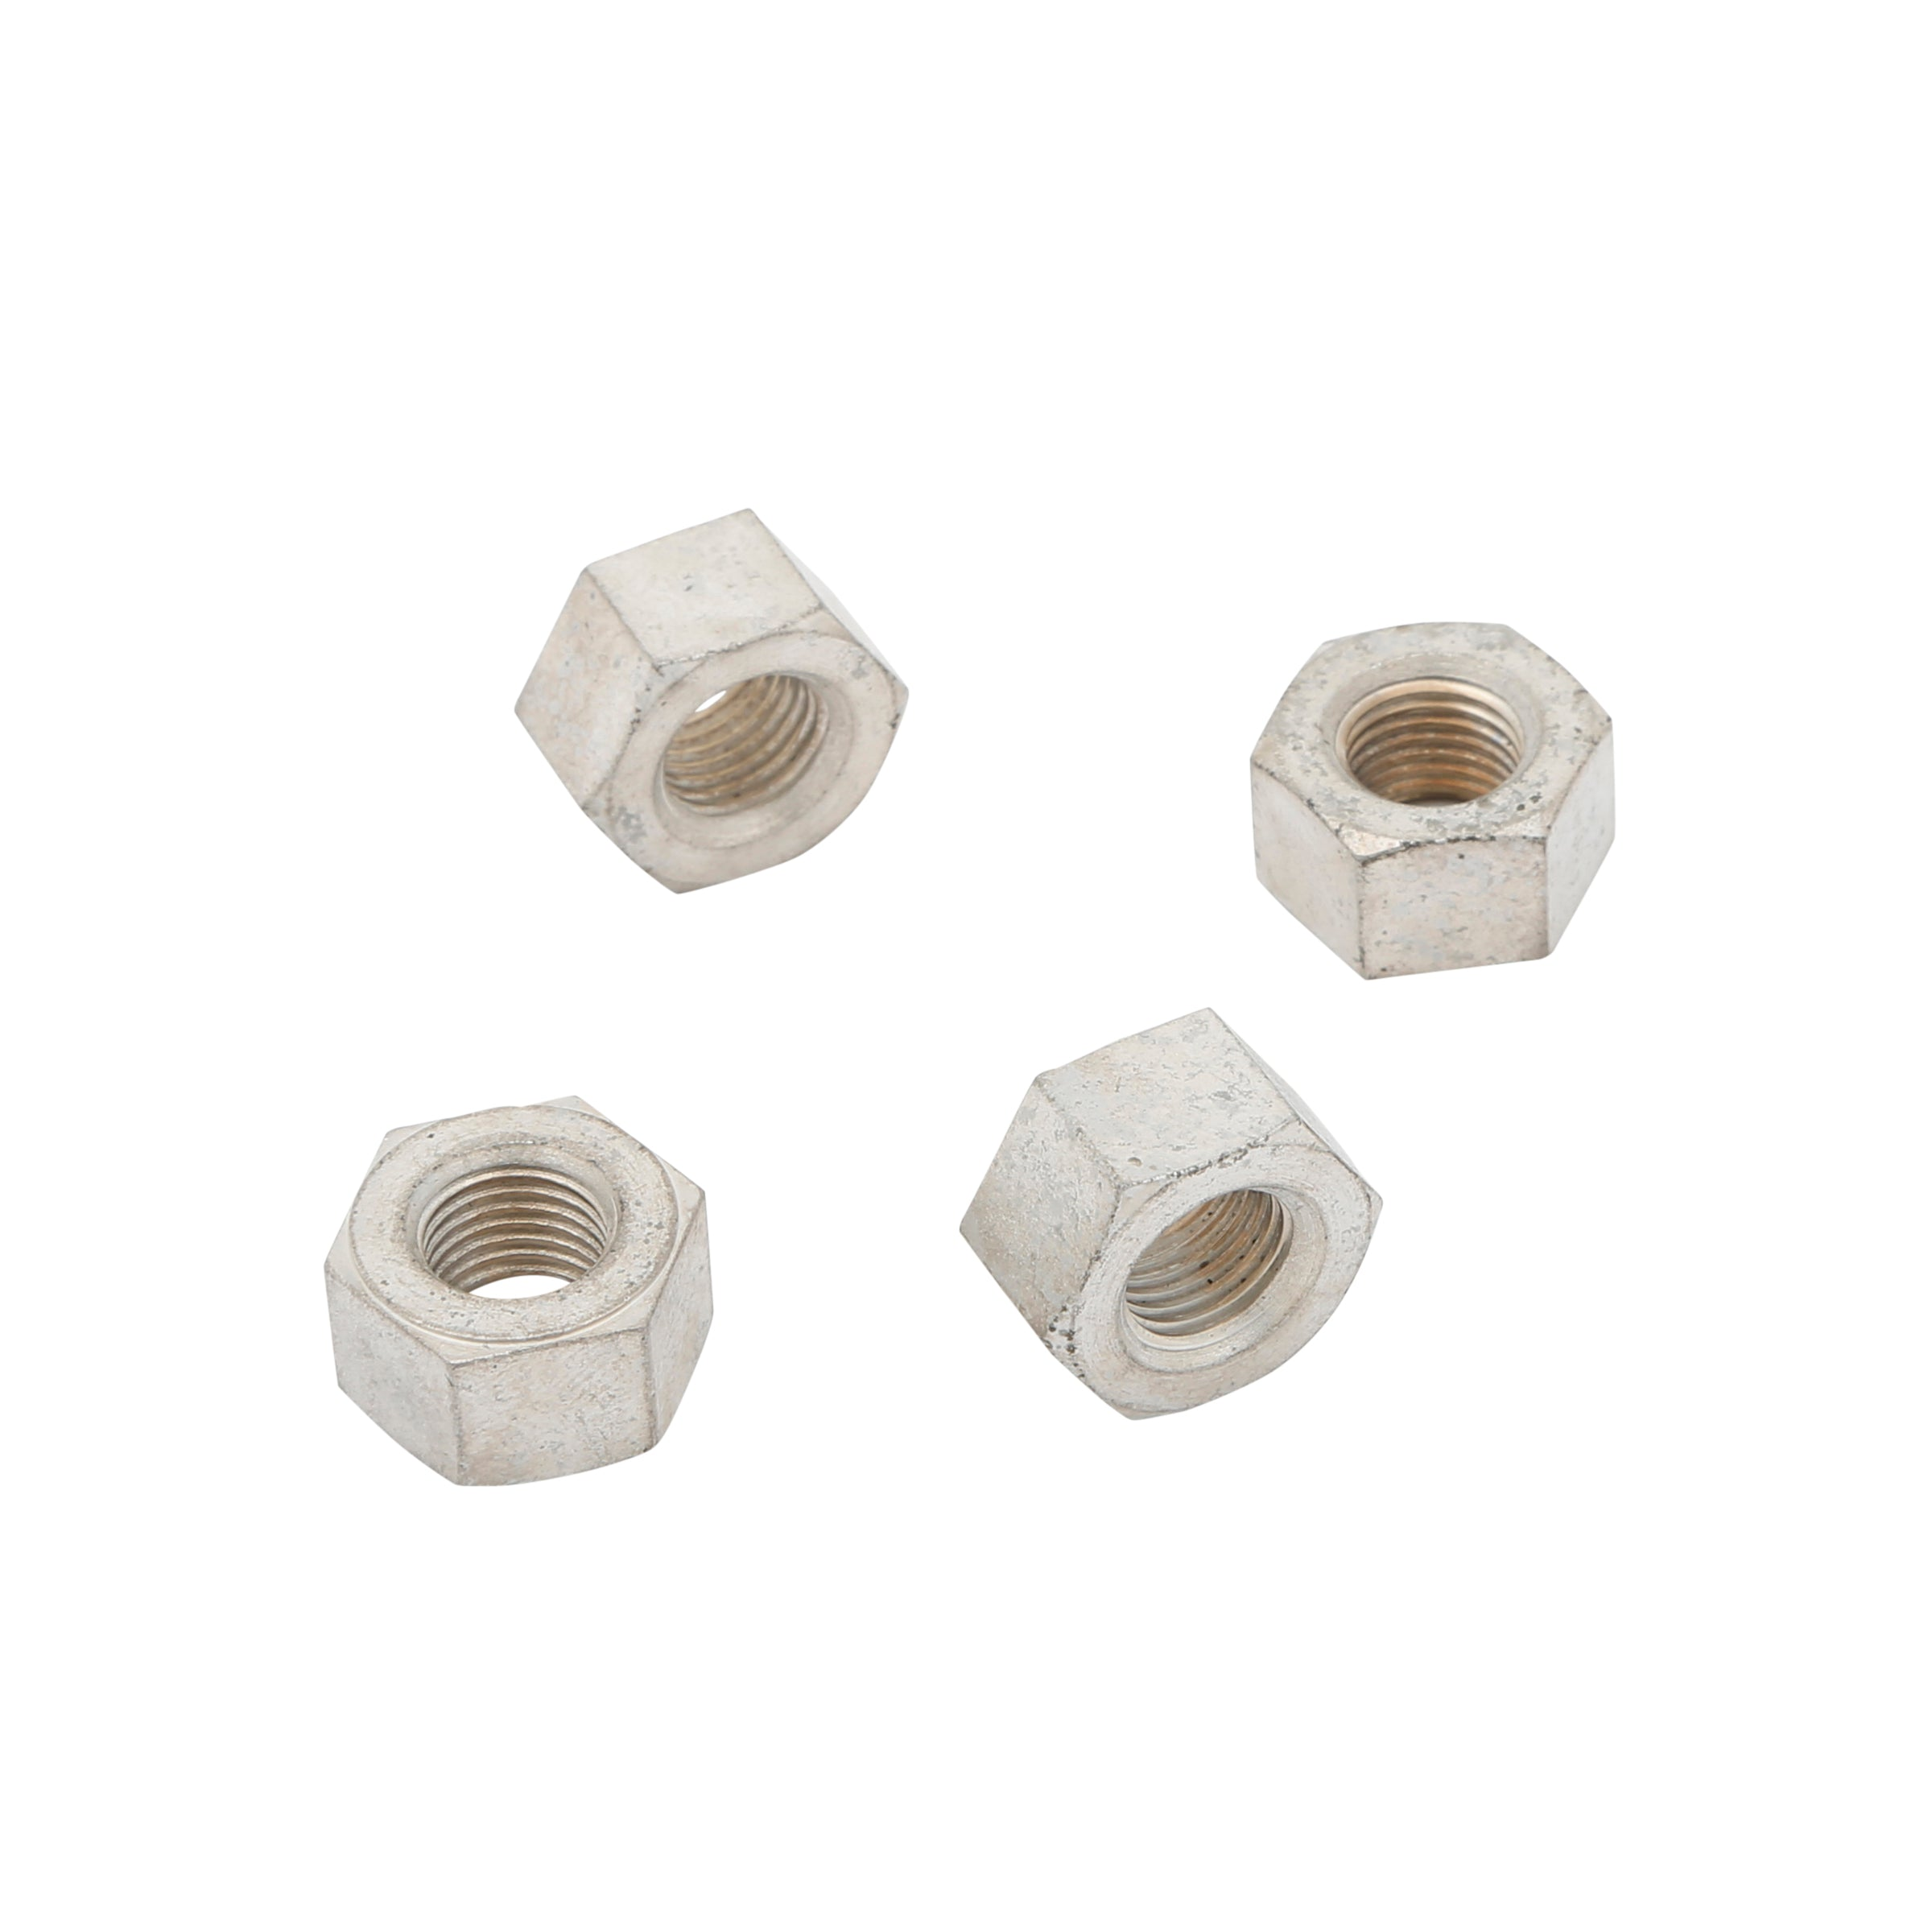 Steering Box Nuts • 2 Tooth